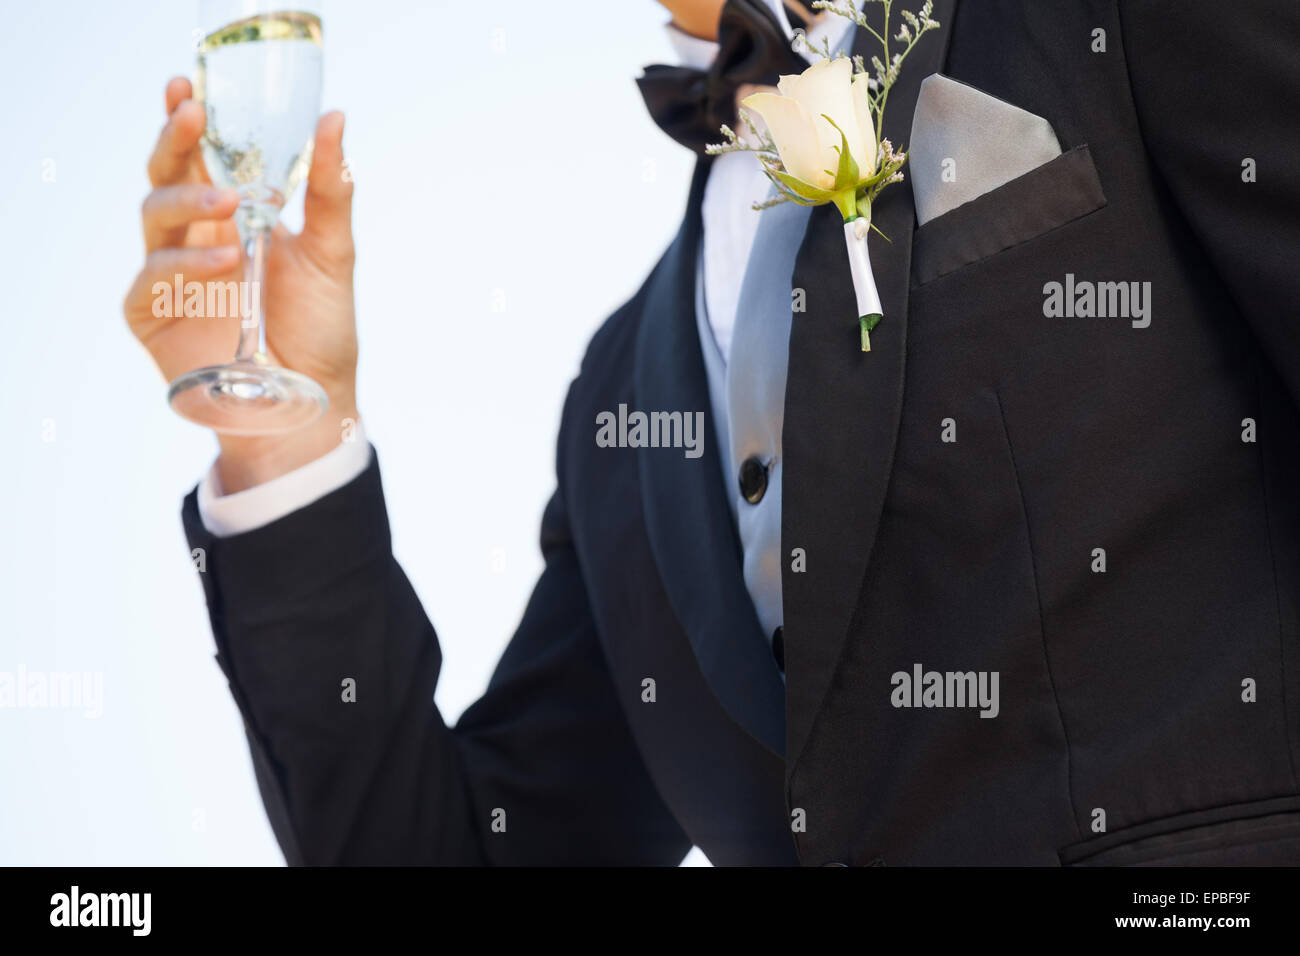 Mid section of flowers on lapel of male as he holds champagne glass Stock Photo